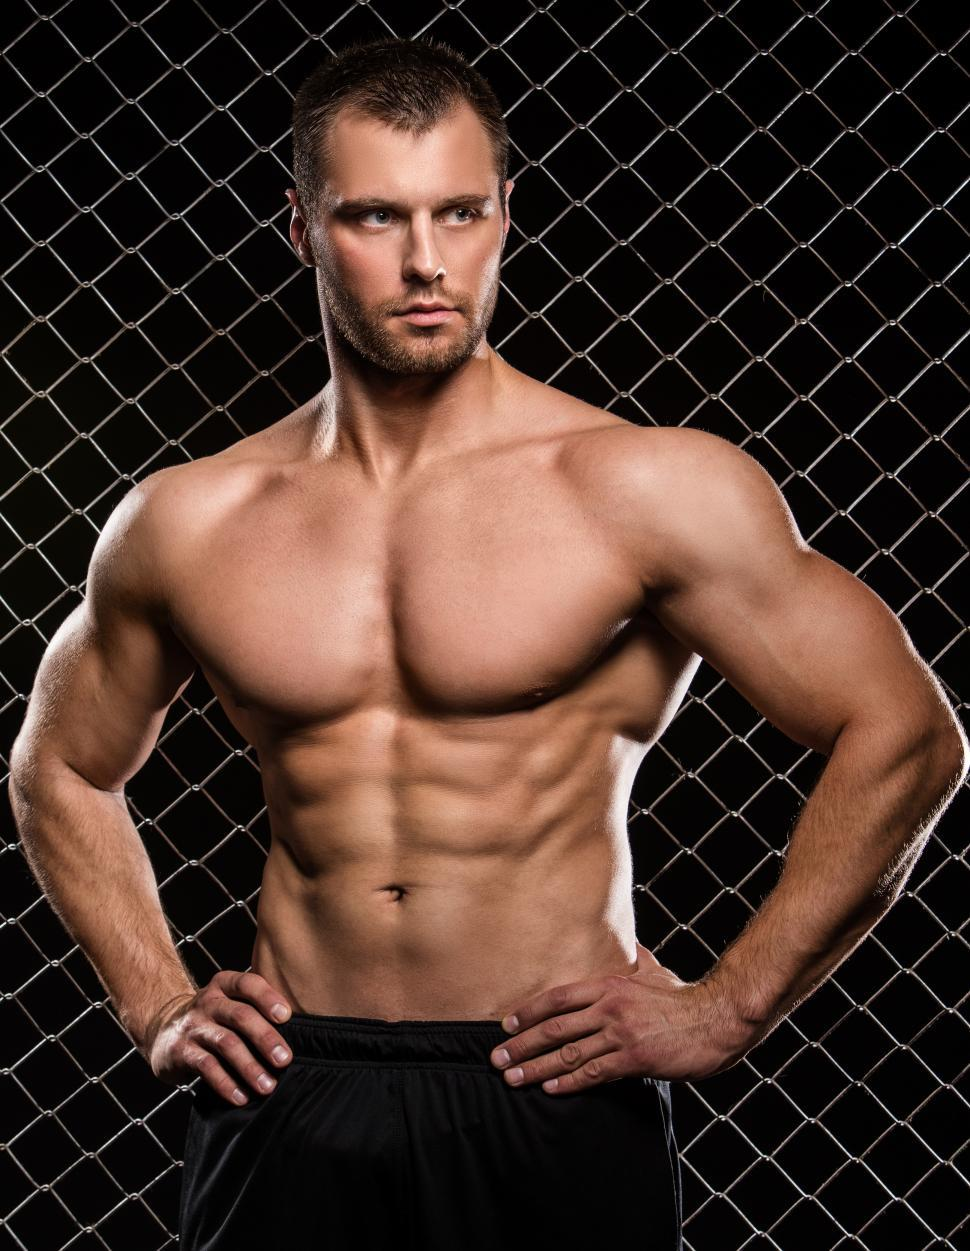 Download Free Stock Photo of Shirtless muscular man standing with hands on hips